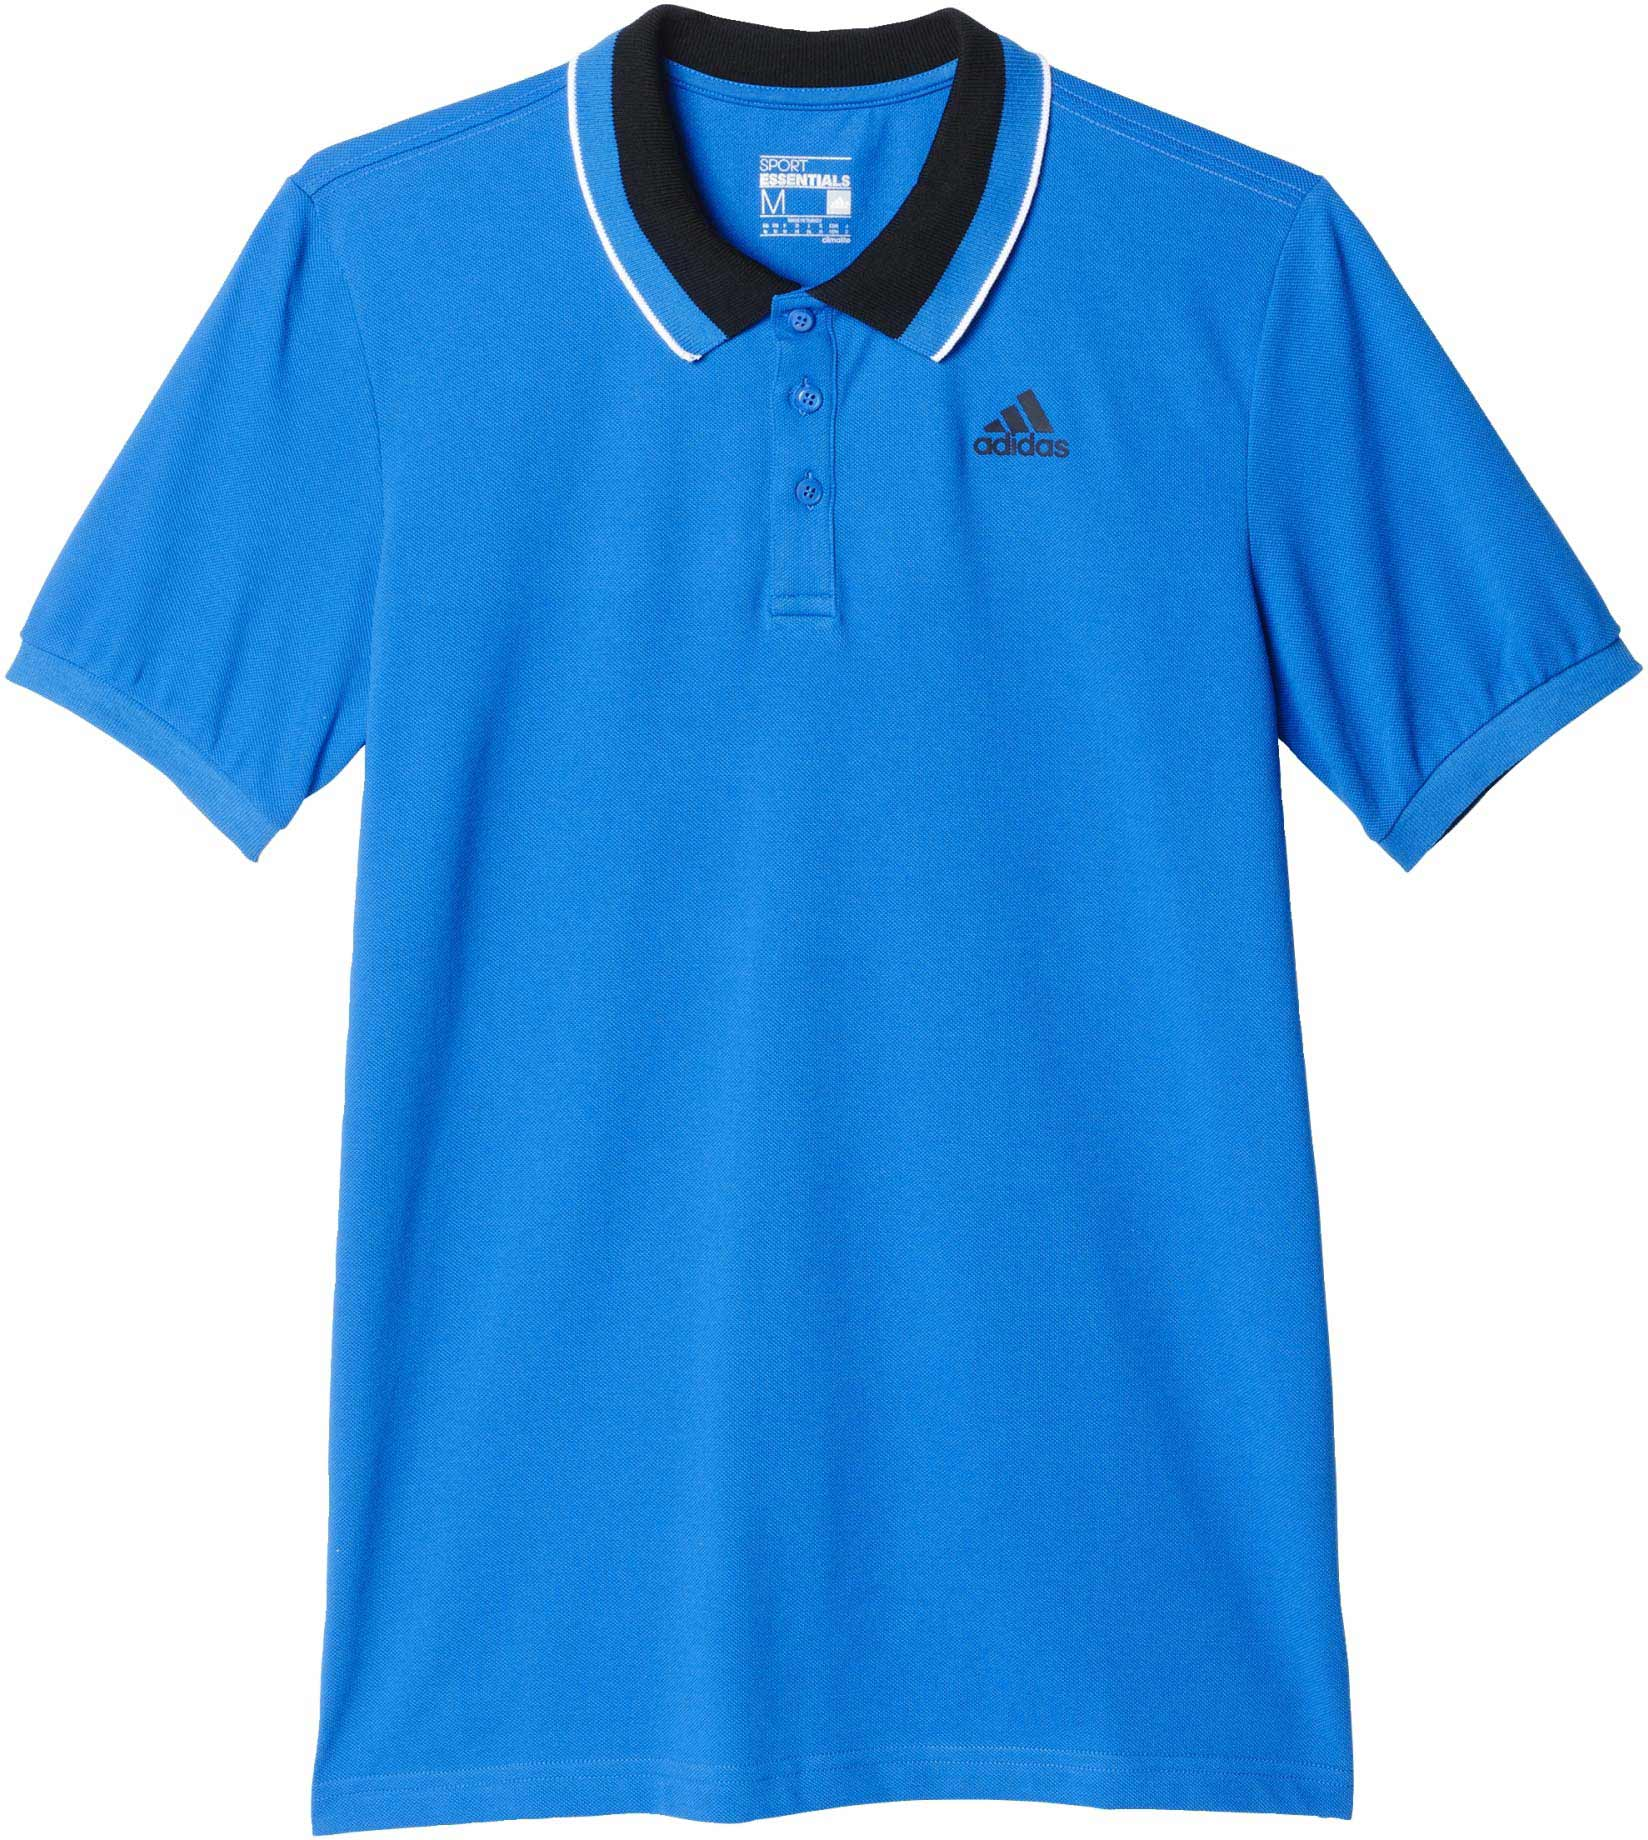 adidas polo essentials